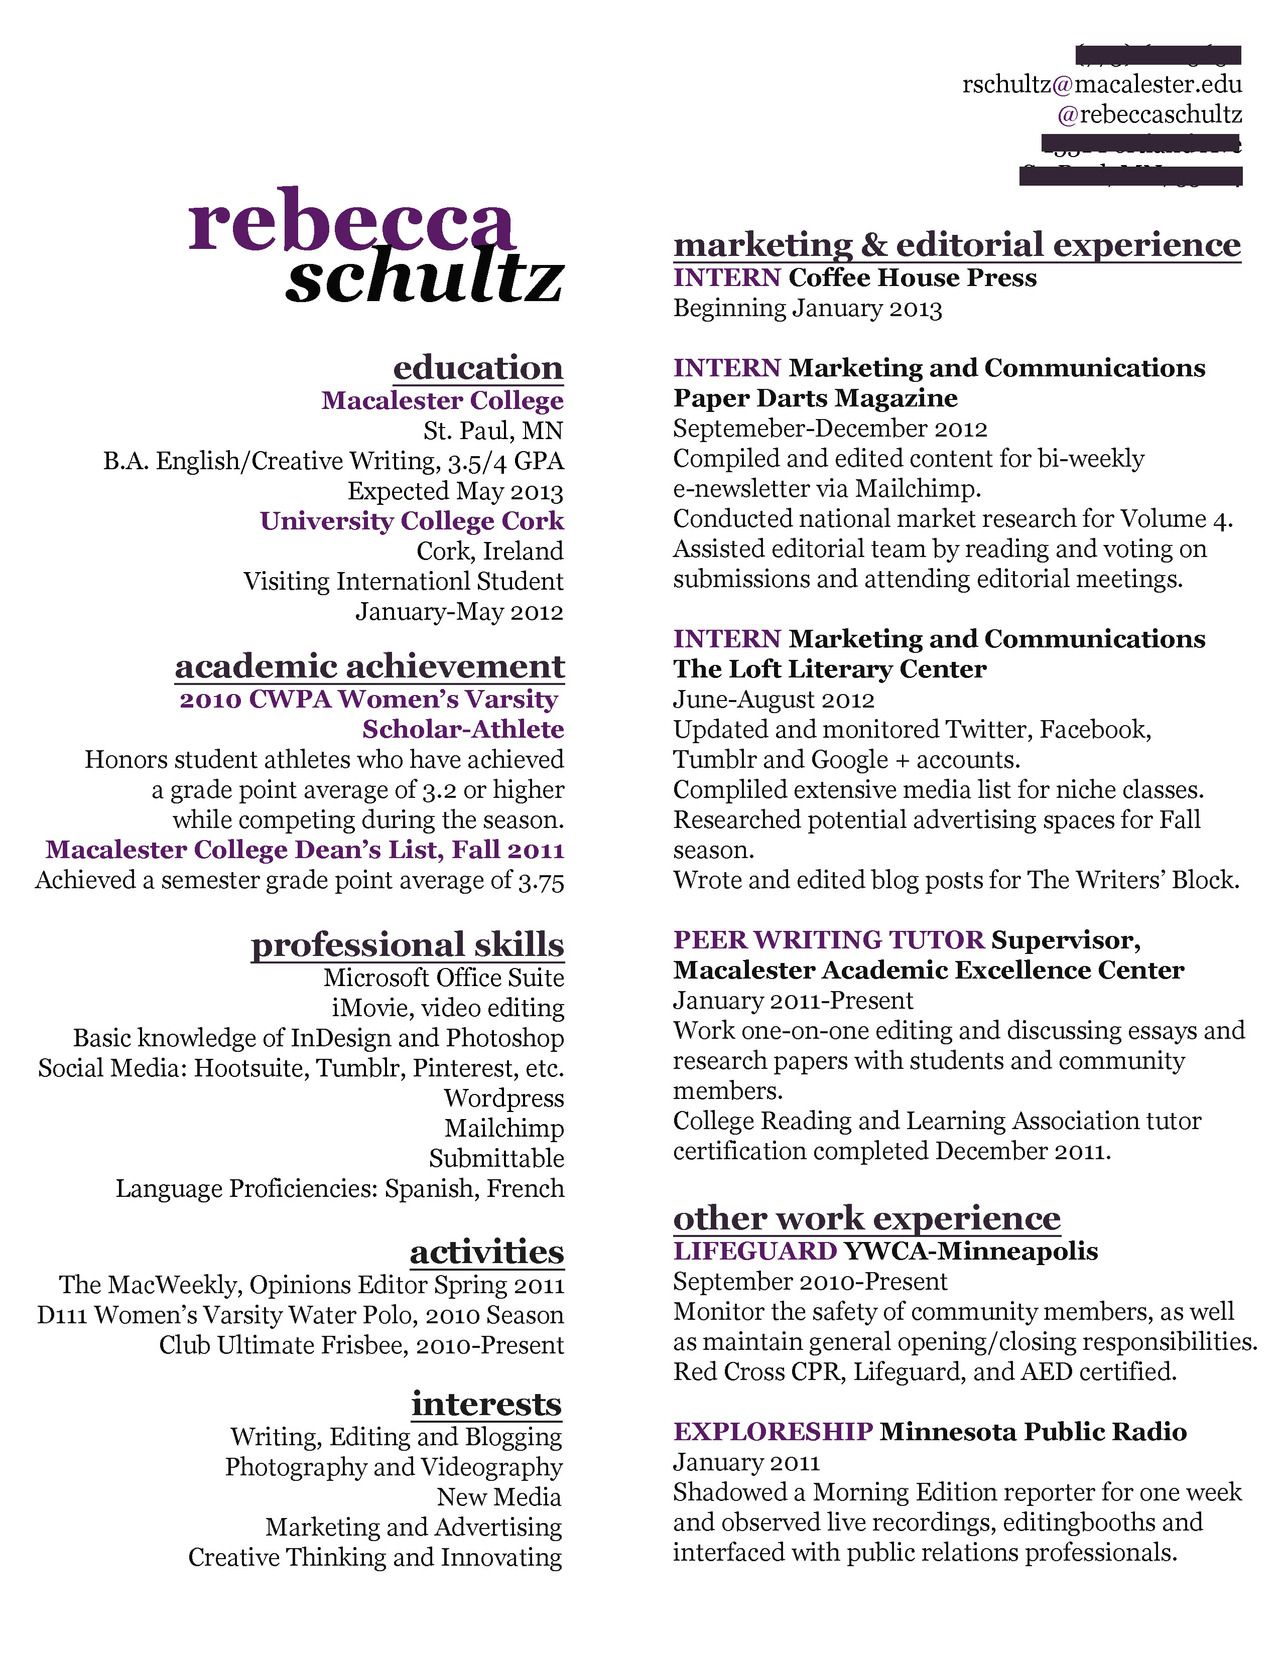 creative resume writer resume entry level resume marketing resume advertising resume - Marketing Resume Examples Entry Level